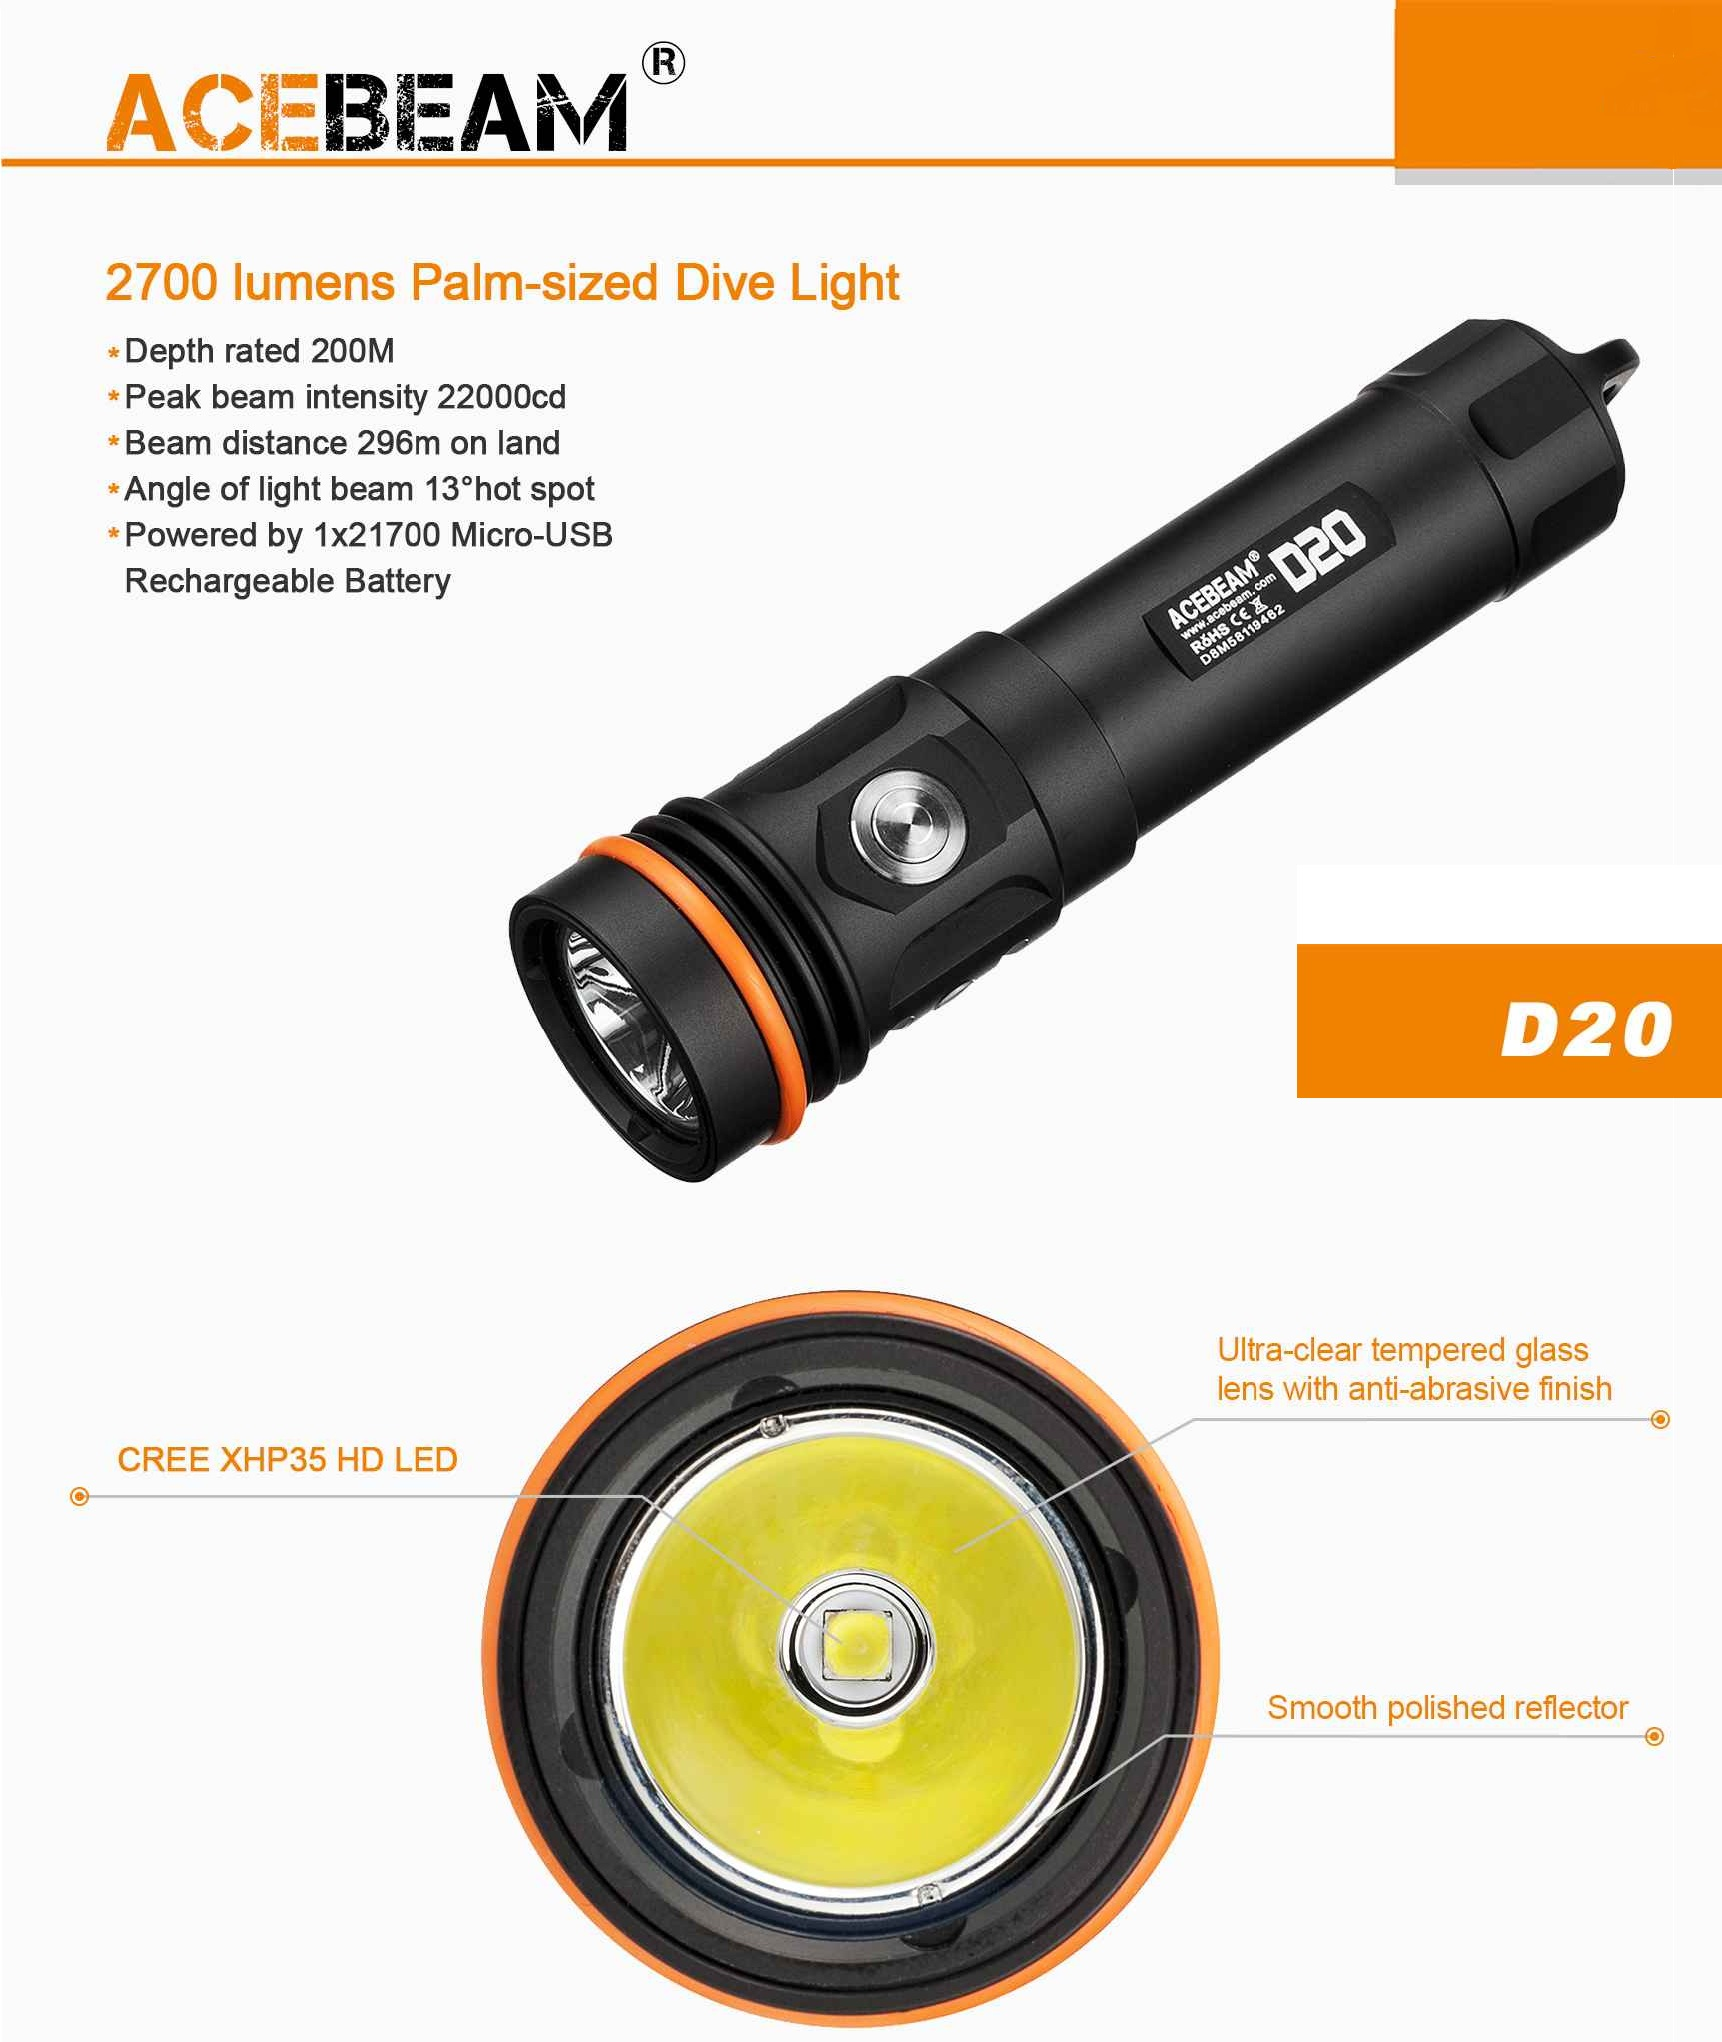 ACEBEAM D20 DIVE FLASHLIGHT